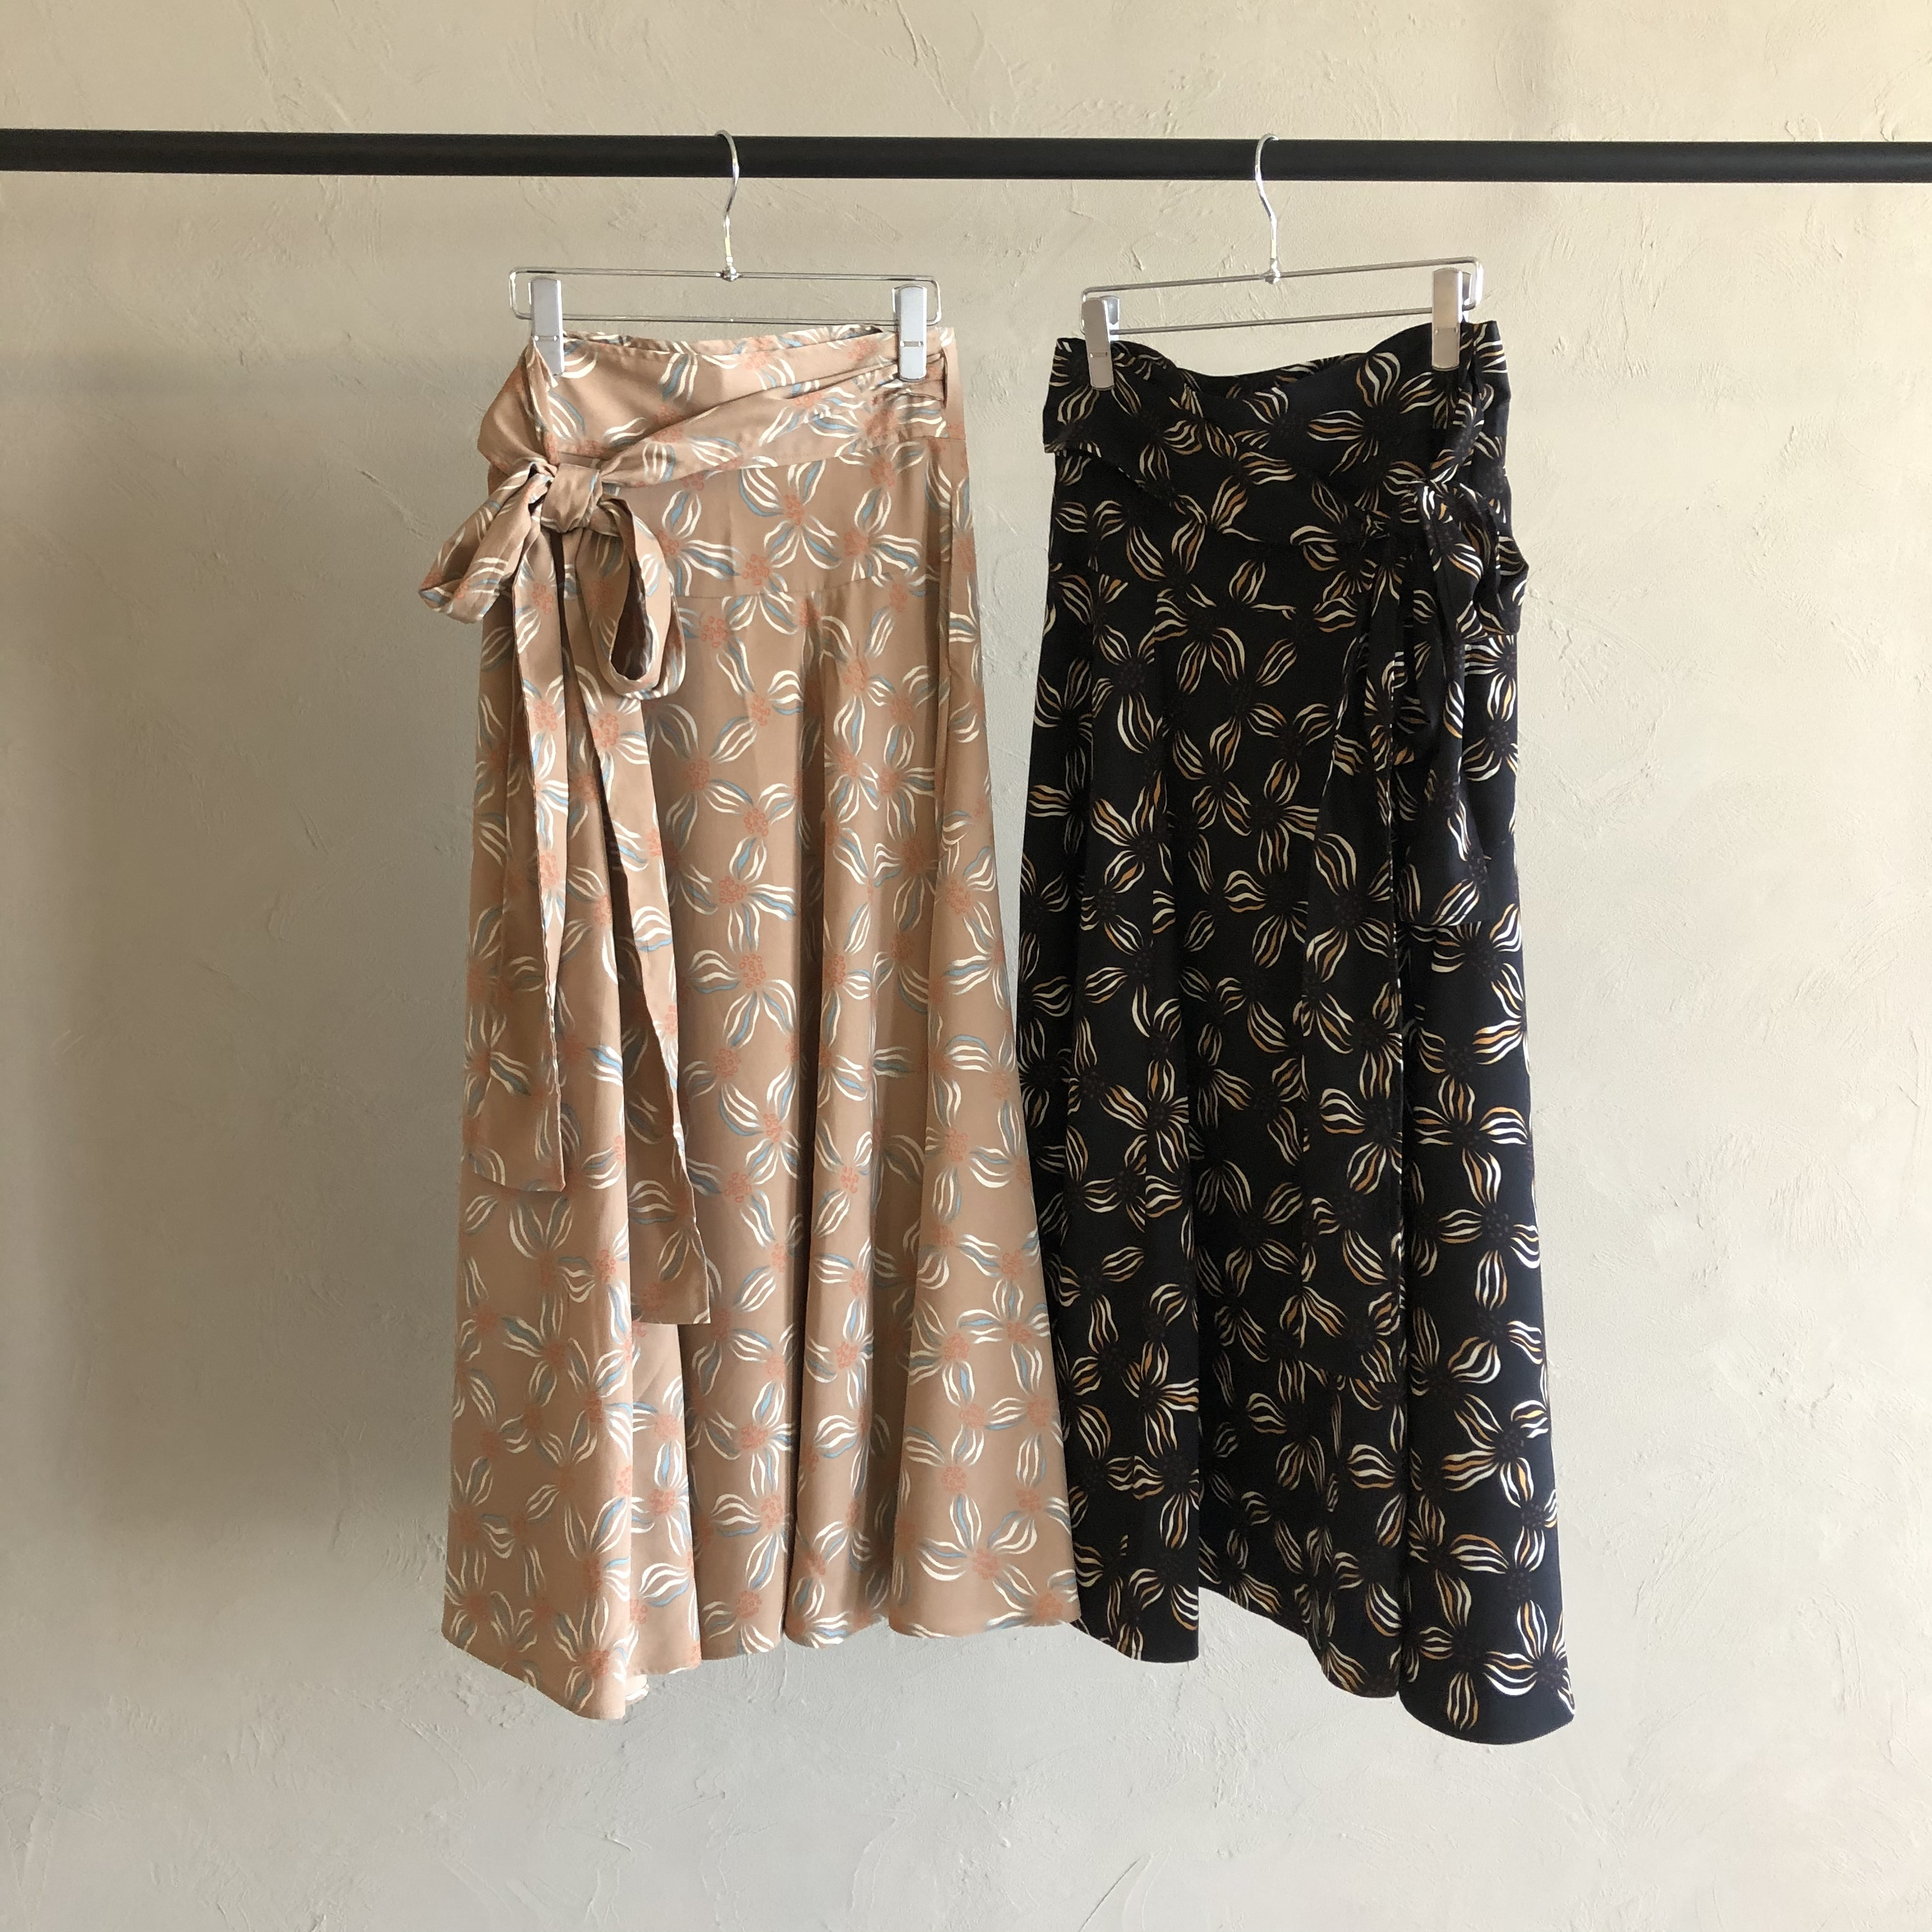 【 NAUS 】- 0022-S- 2way FLOWER WRAP SKIRT